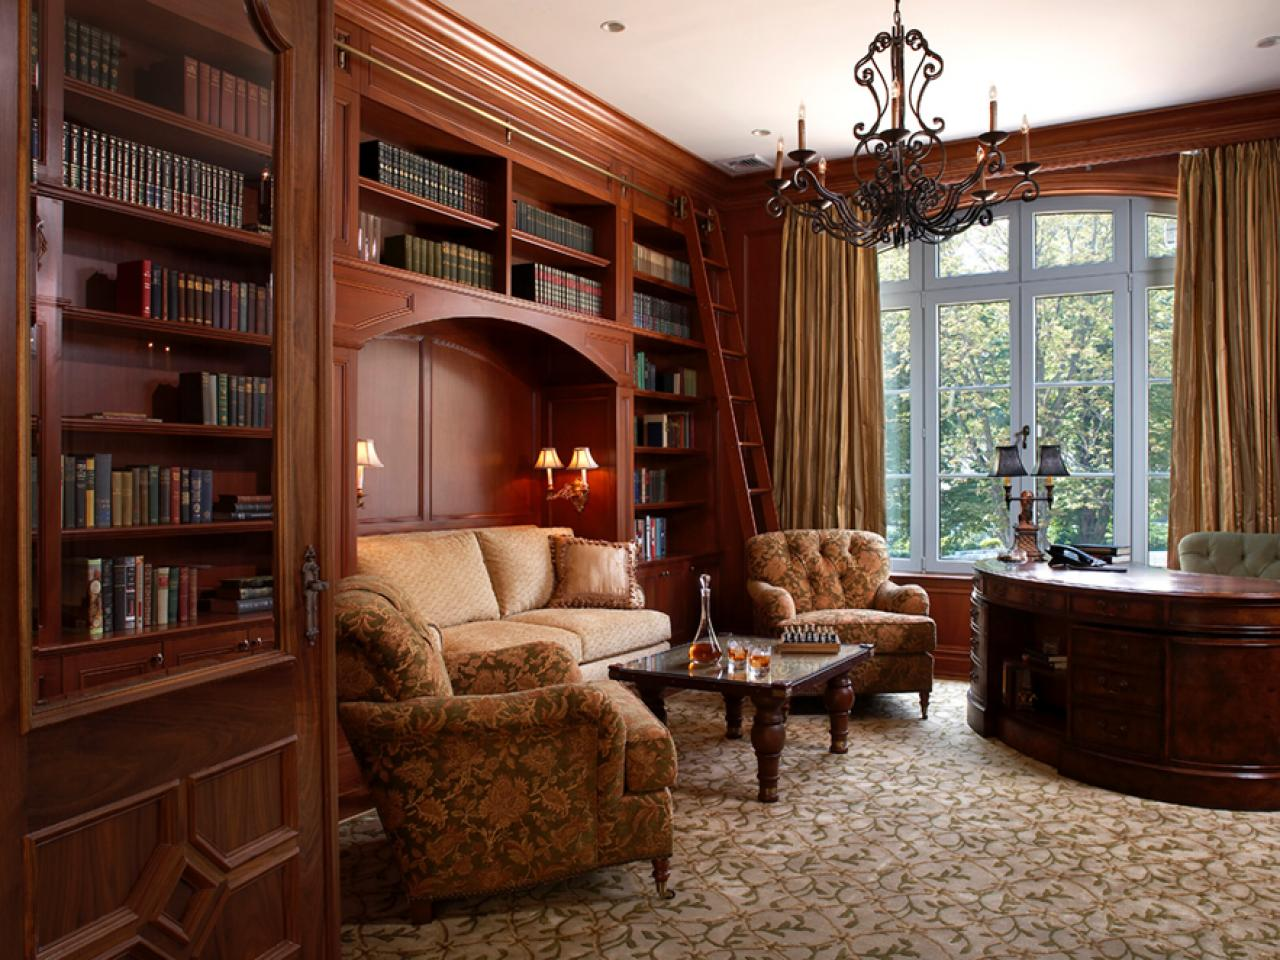 12 Dreamy Home Libraries Decorating And Design Ideas For